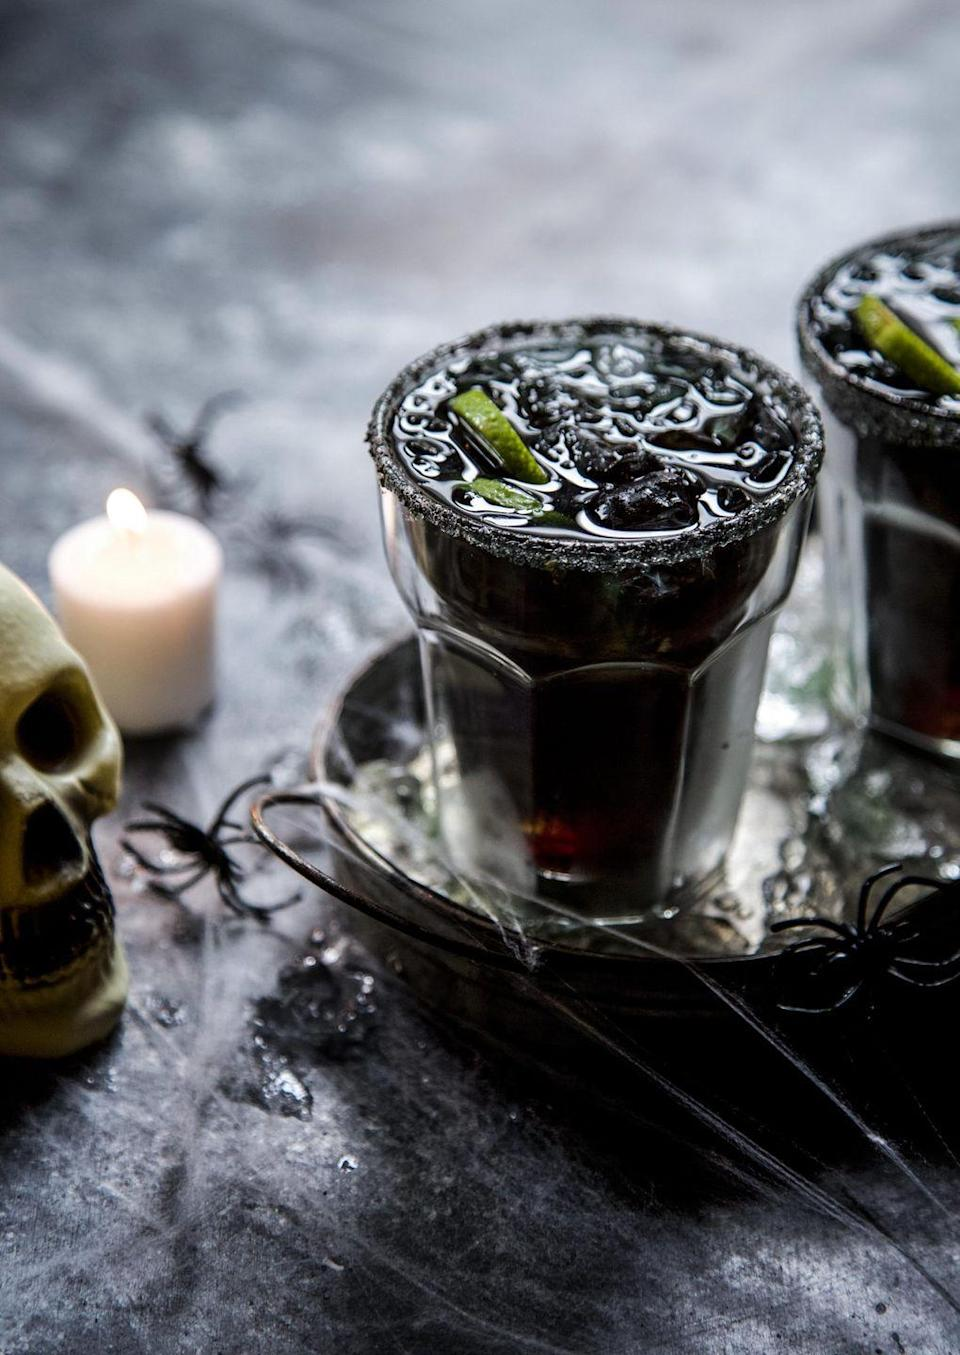 """<p>Turn a classic margarita into a ghoulish drink by adding red, blue, and green food coloring. The deep black color is easy to achieve—and so spooky!</p><p><strong>Get the recipe at <a href=""""https://www.climbinggriermountain.com/2018/10/hallow-rita-halloween-margarita.html"""" rel=""""nofollow noopener"""" target=""""_blank"""" data-ylk=""""slk:Climbing Grier Mountain"""" class=""""link rapid-noclick-resp"""">Climbing Grier Mountain</a>. </strong></p><p><a class=""""link rapid-noclick-resp"""" href=""""https://go.redirectingat.com?id=74968X1596630&url=https%3A%2F%2Fwww.walmart.com%2Fsearch%2F%3Fquery%3Dpioneer%2Bwoman%2Bserving%2Btrays&sref=https%3A%2F%2Fwww.thepioneerwoman.com%2Fholidays-celebrations%2Fg36982659%2Fhalloween-drink-recipes%2F"""" rel=""""nofollow noopener"""" target=""""_blank"""" data-ylk=""""slk:SHOP SERVING TRAYS"""">SHOP SERVING TRAYS</a></p>"""